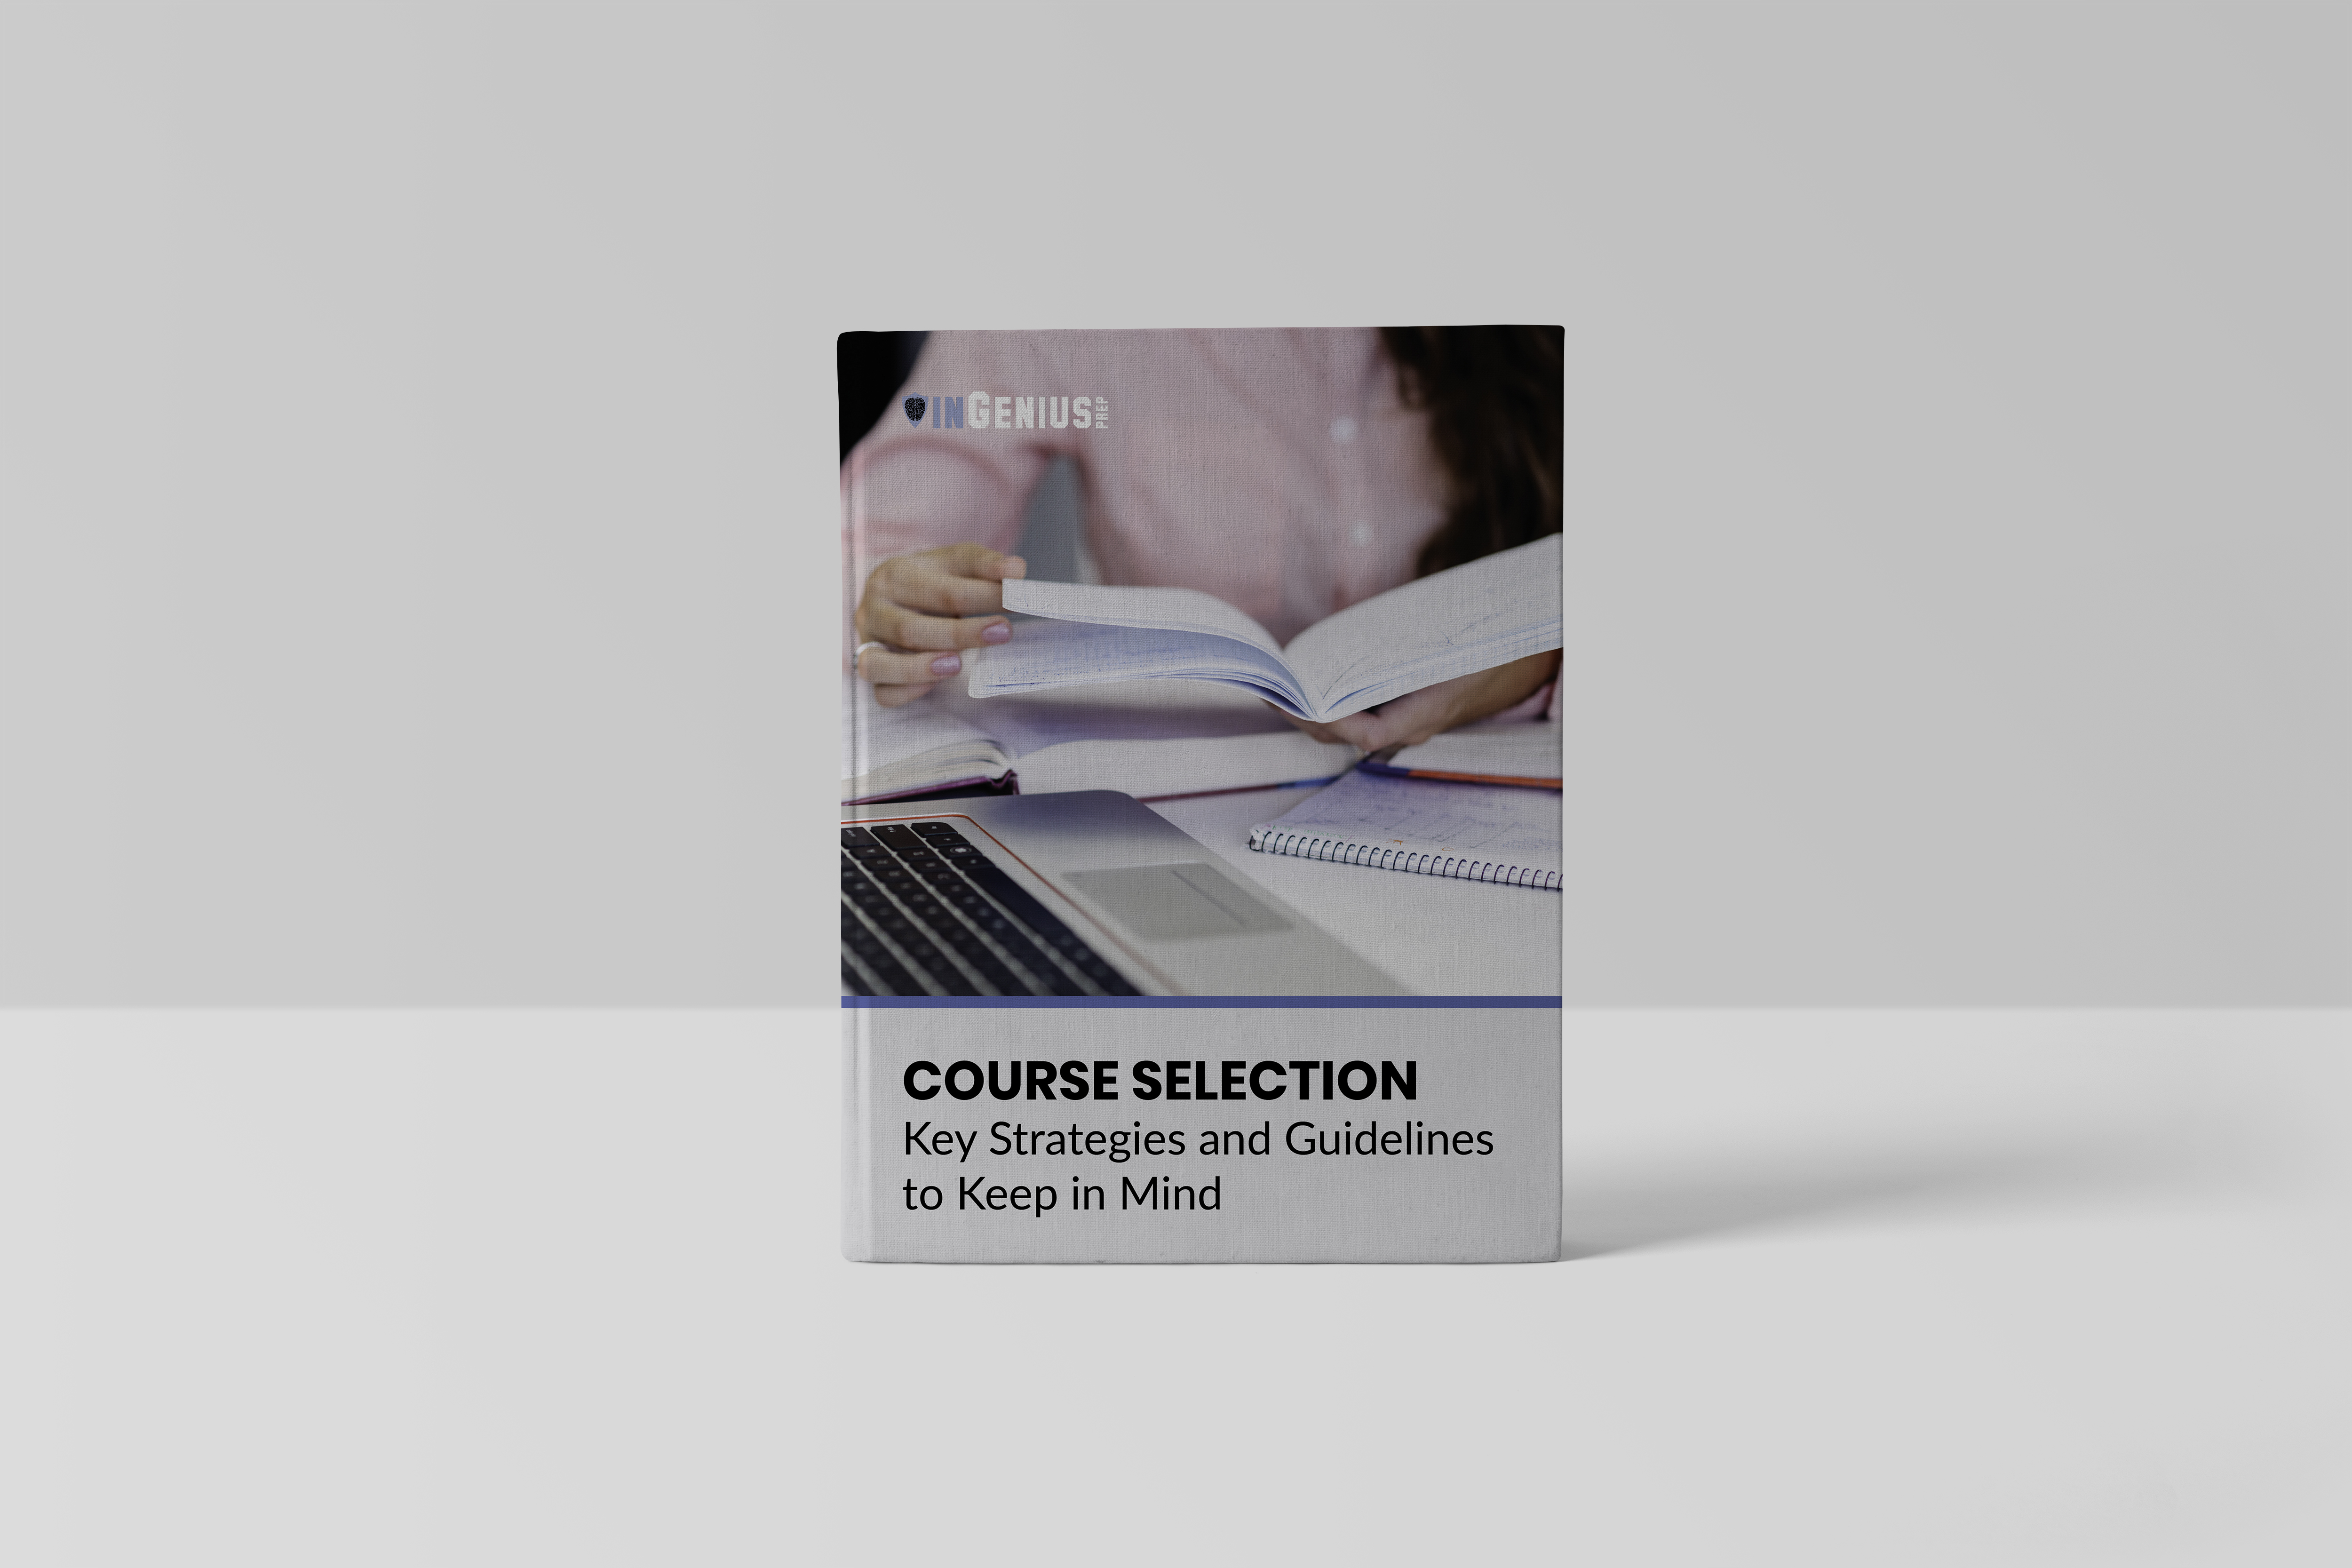 https://ingeniusprep.com/app/uploads/2019/08/Course-Selection_Key-Strategies-and-Guidelines-to-Keep-in-Mind.jpg